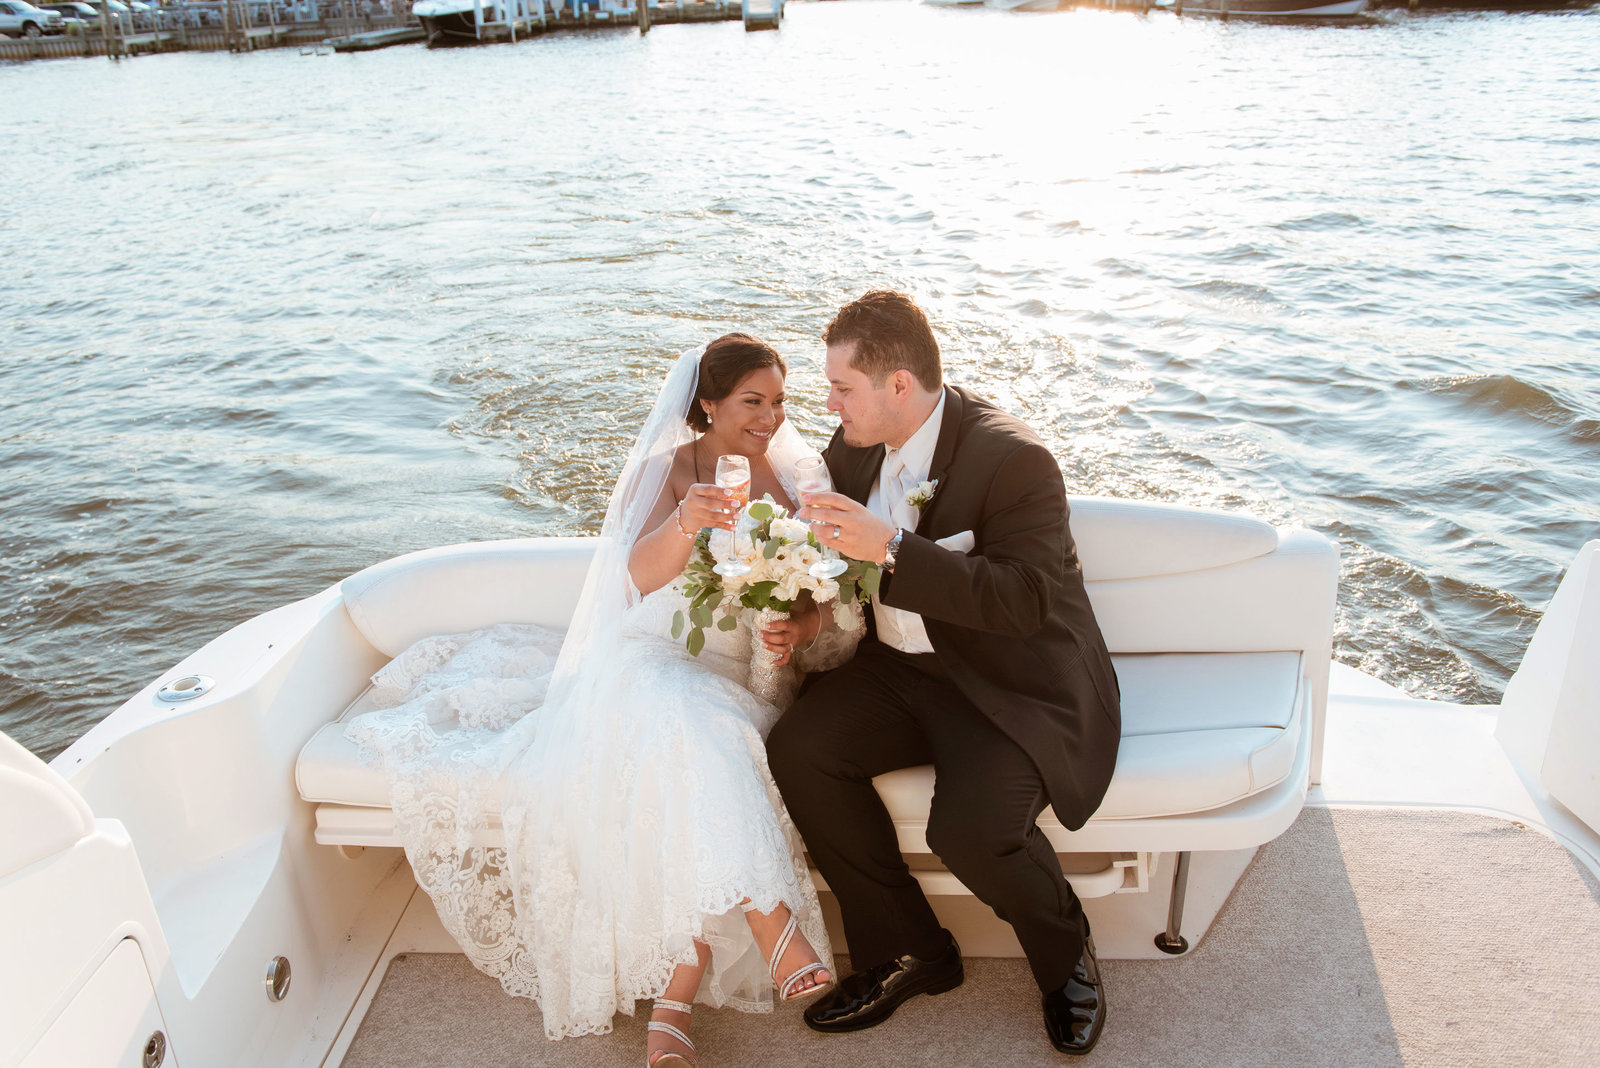 Bride and groom sitting on a boat at Chateau La Mer